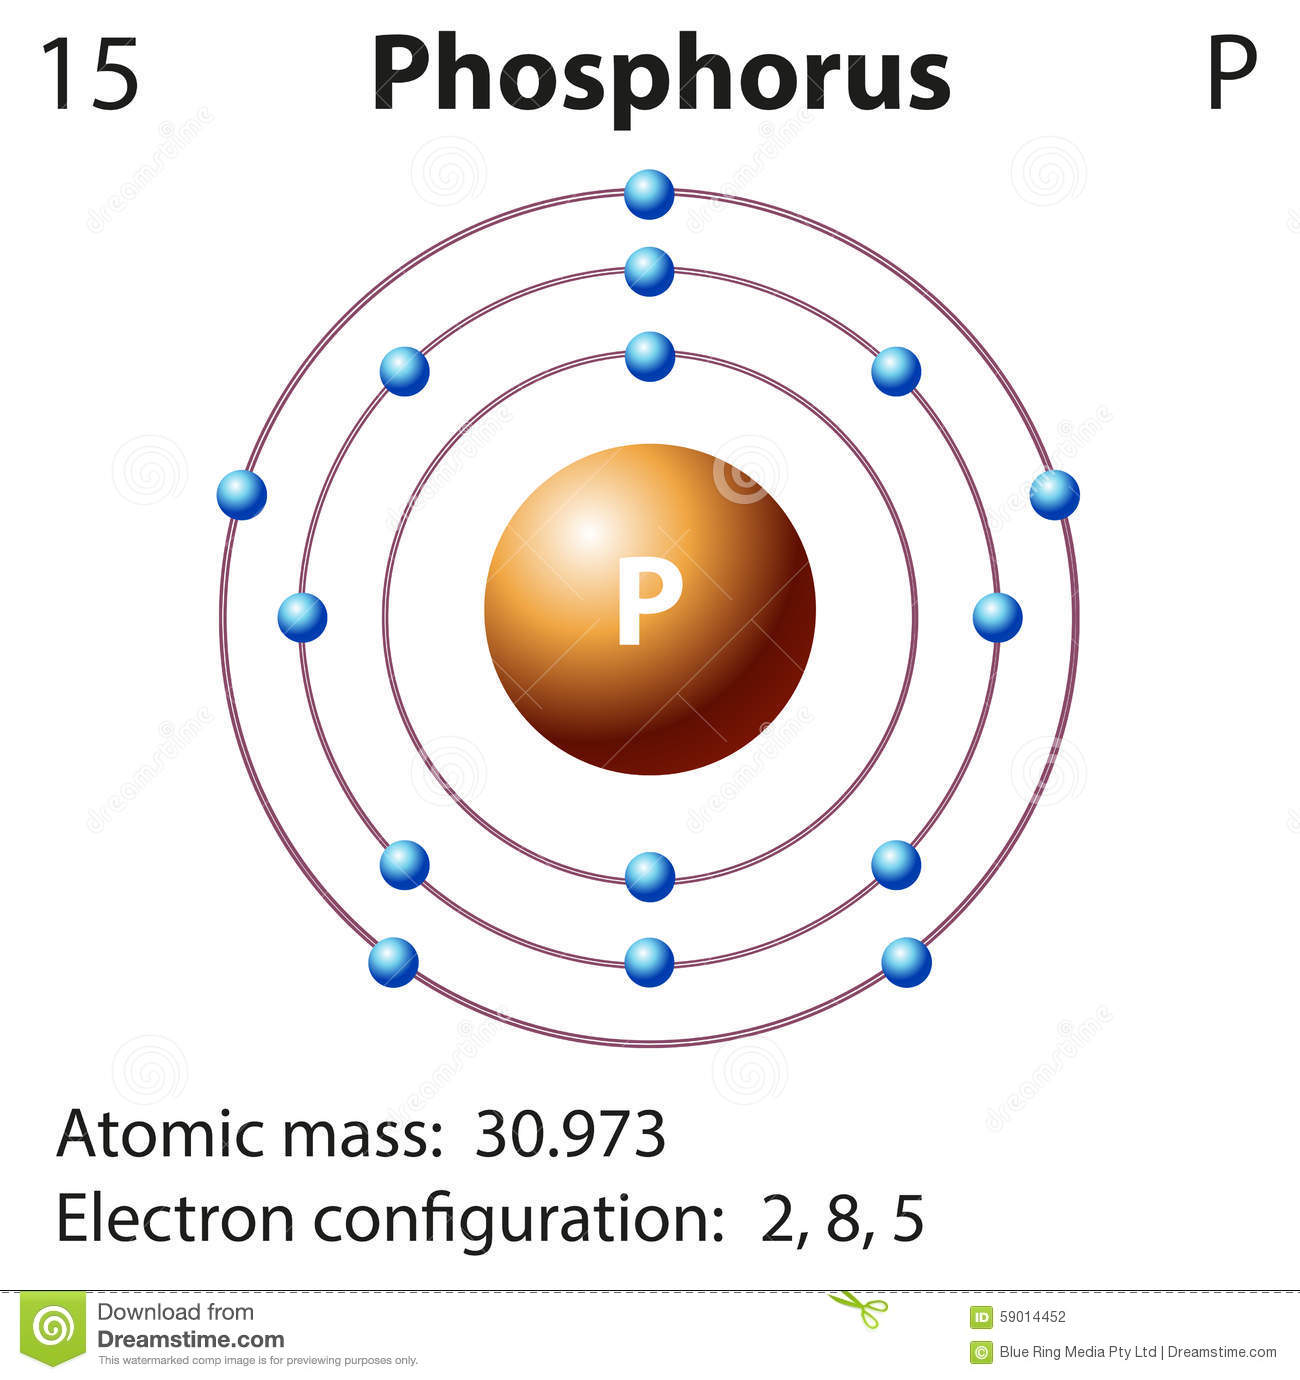 hight resolution of diagram representation of the element phosphorus stock illustration phase diagram of phosphorus diagram of phosphorus